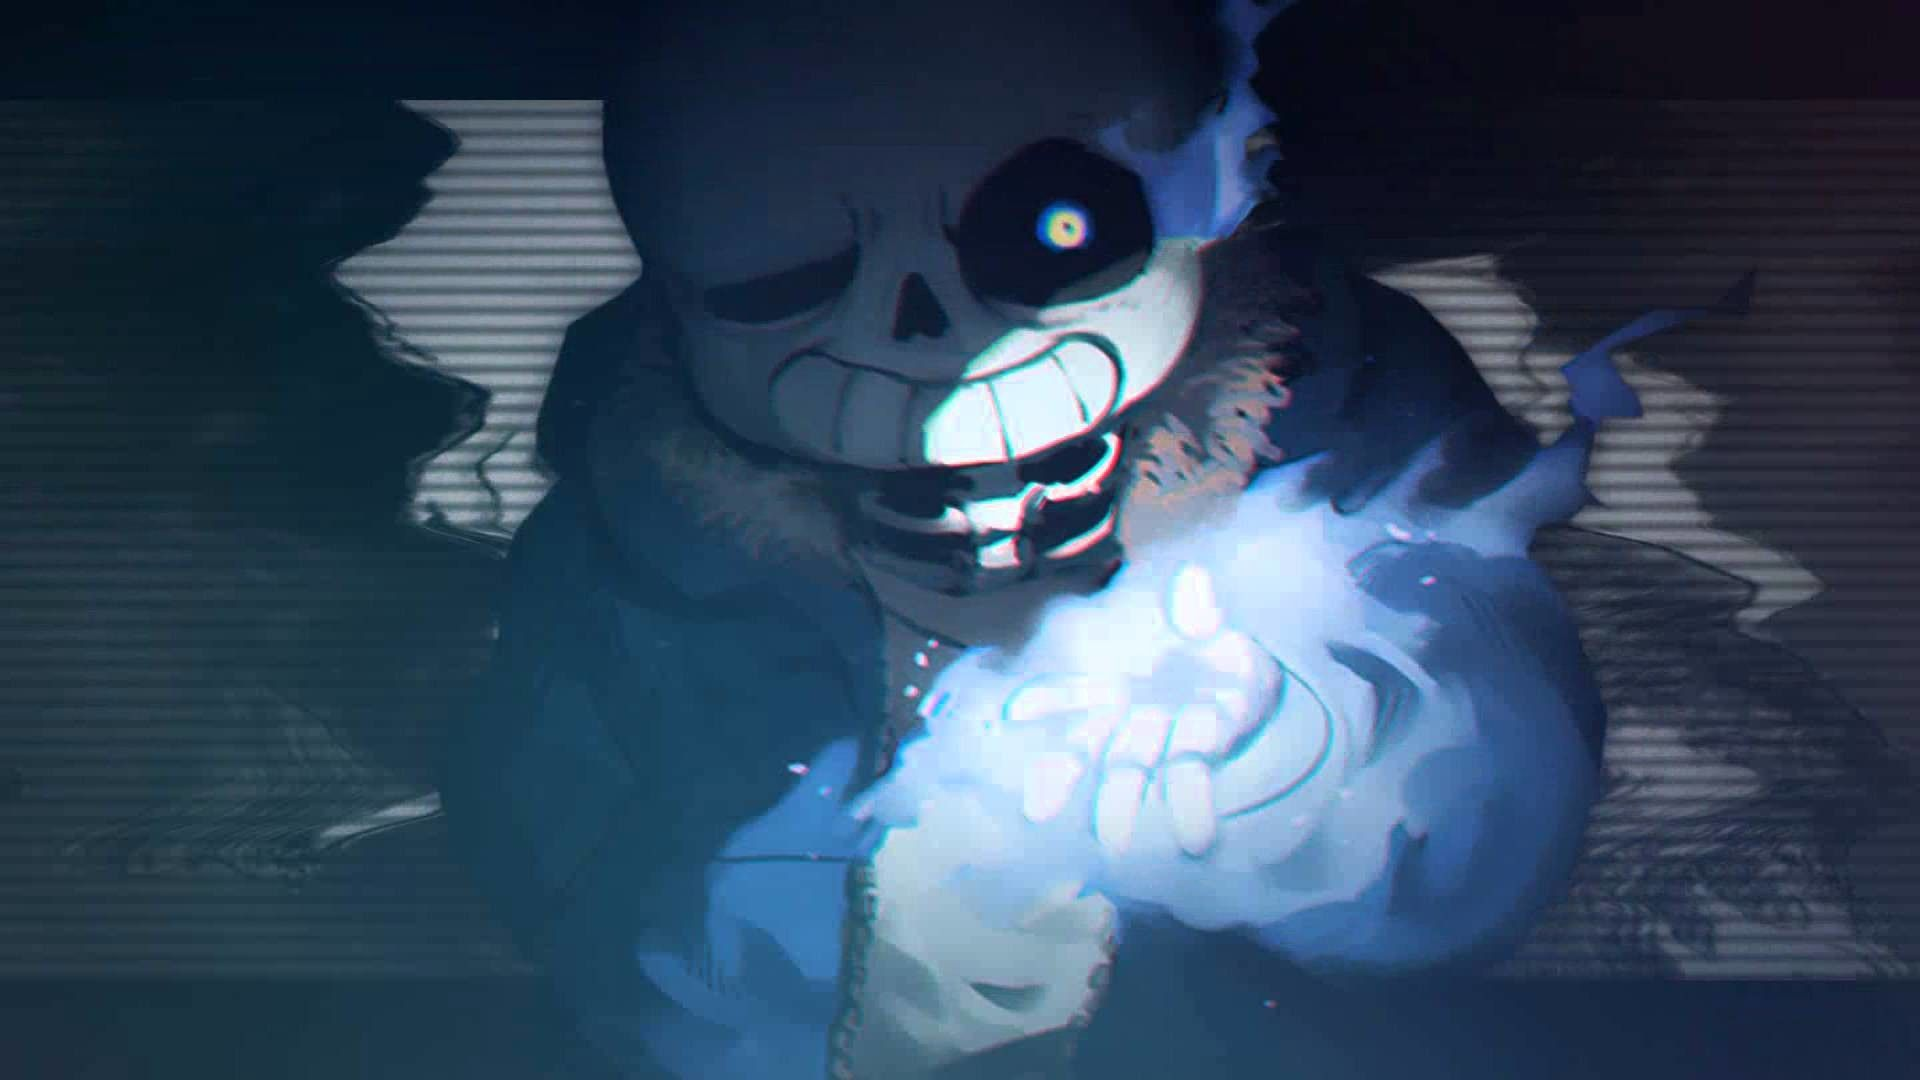 Undertale Sans Wallpapers 80 Images Undertale Undertale Sans Anime